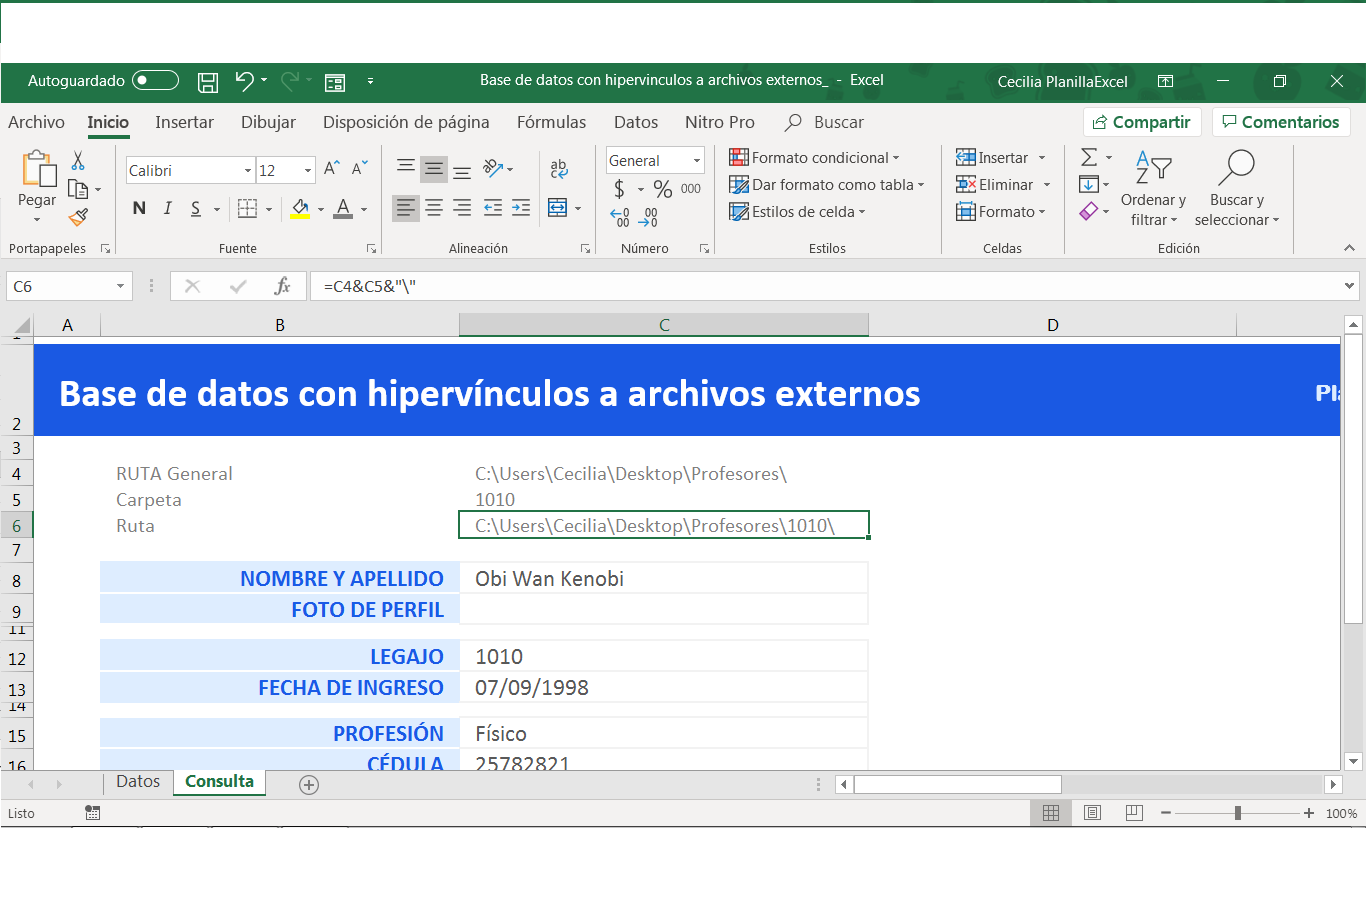 Base de datos excel - ruta